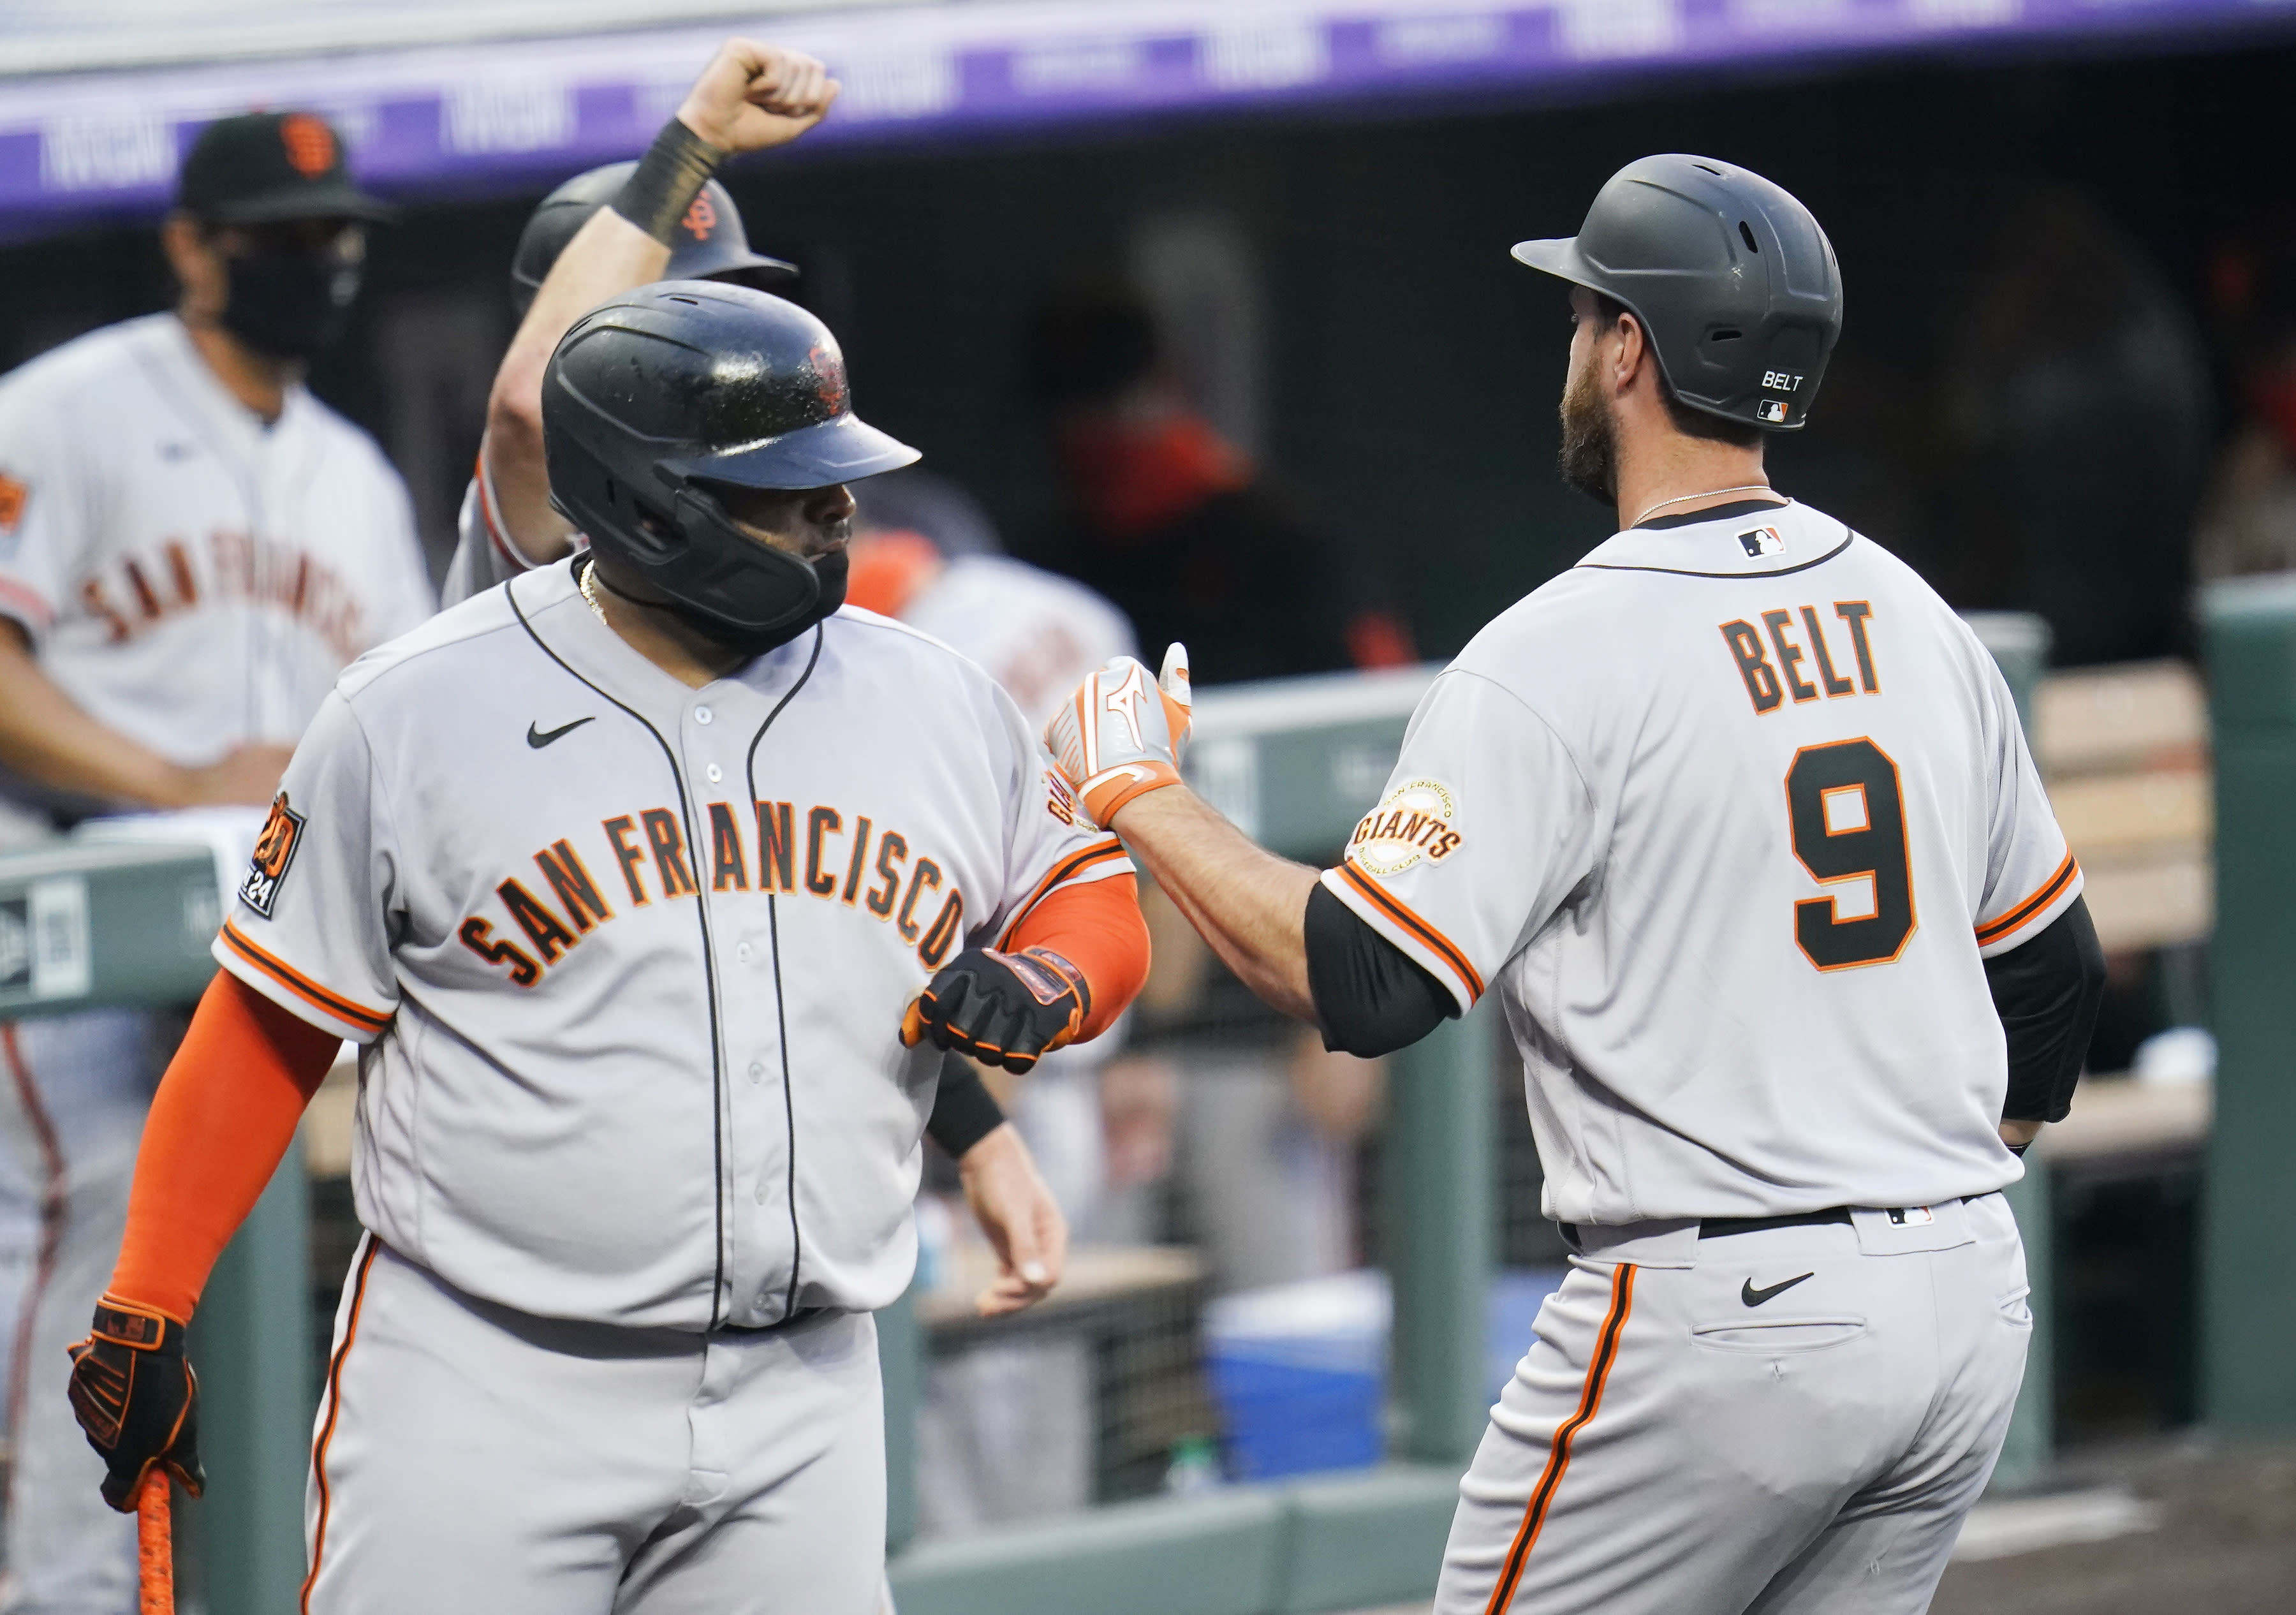 San Francisco Giants' Brandon Belt (9) is congratulated by Pablo Sandoval (48) after hitting a three-run home run against the Colorado Rockies during the fourth inning of a baseball game, Wednesday, Aug. 5, 2020, in Denver. (AP Photo/Jack Dempsey)